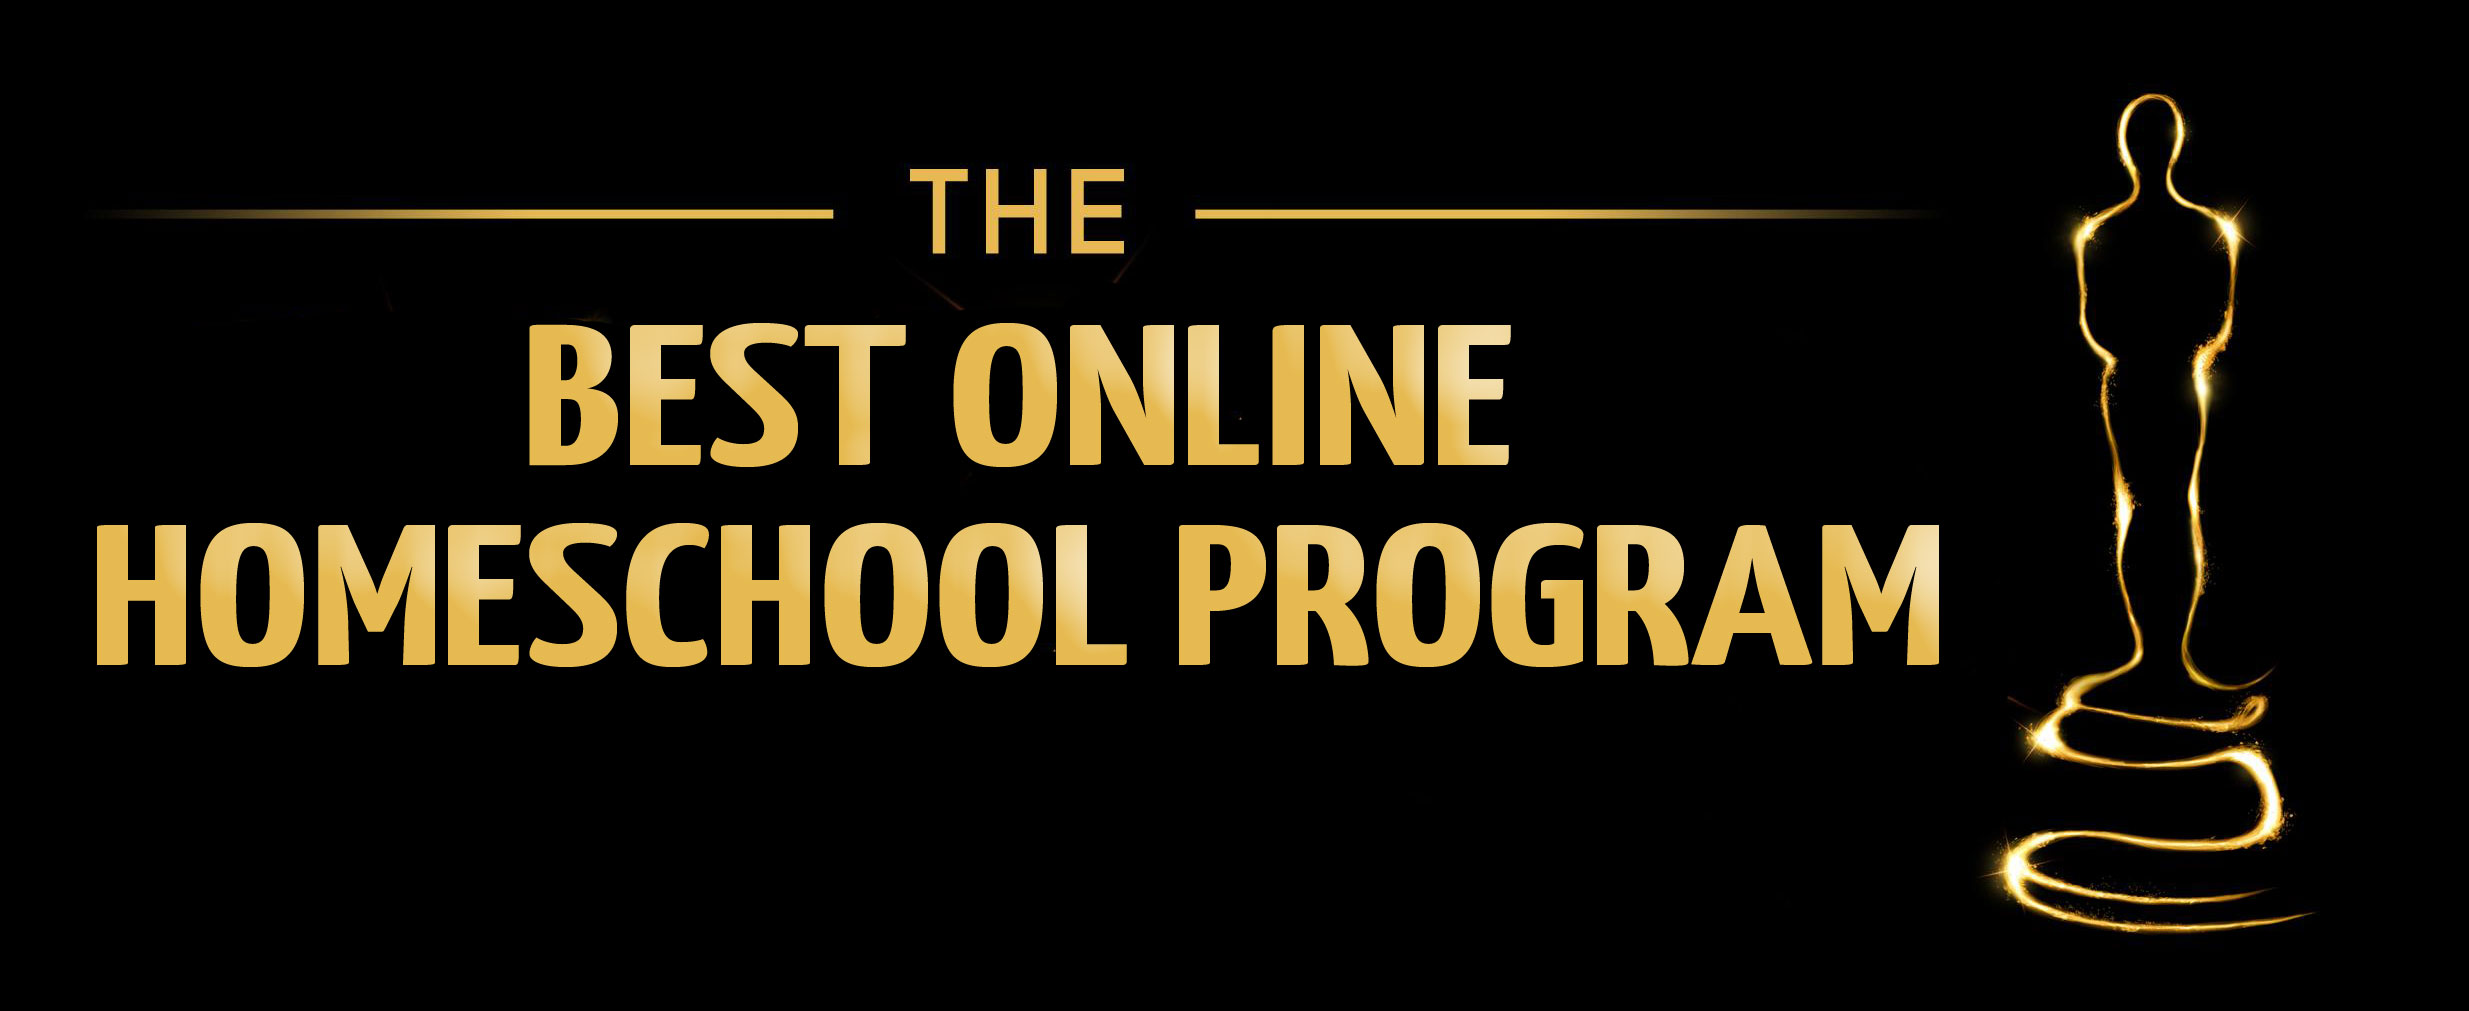 And the Award for Best Online Homeschool Program Goes to…